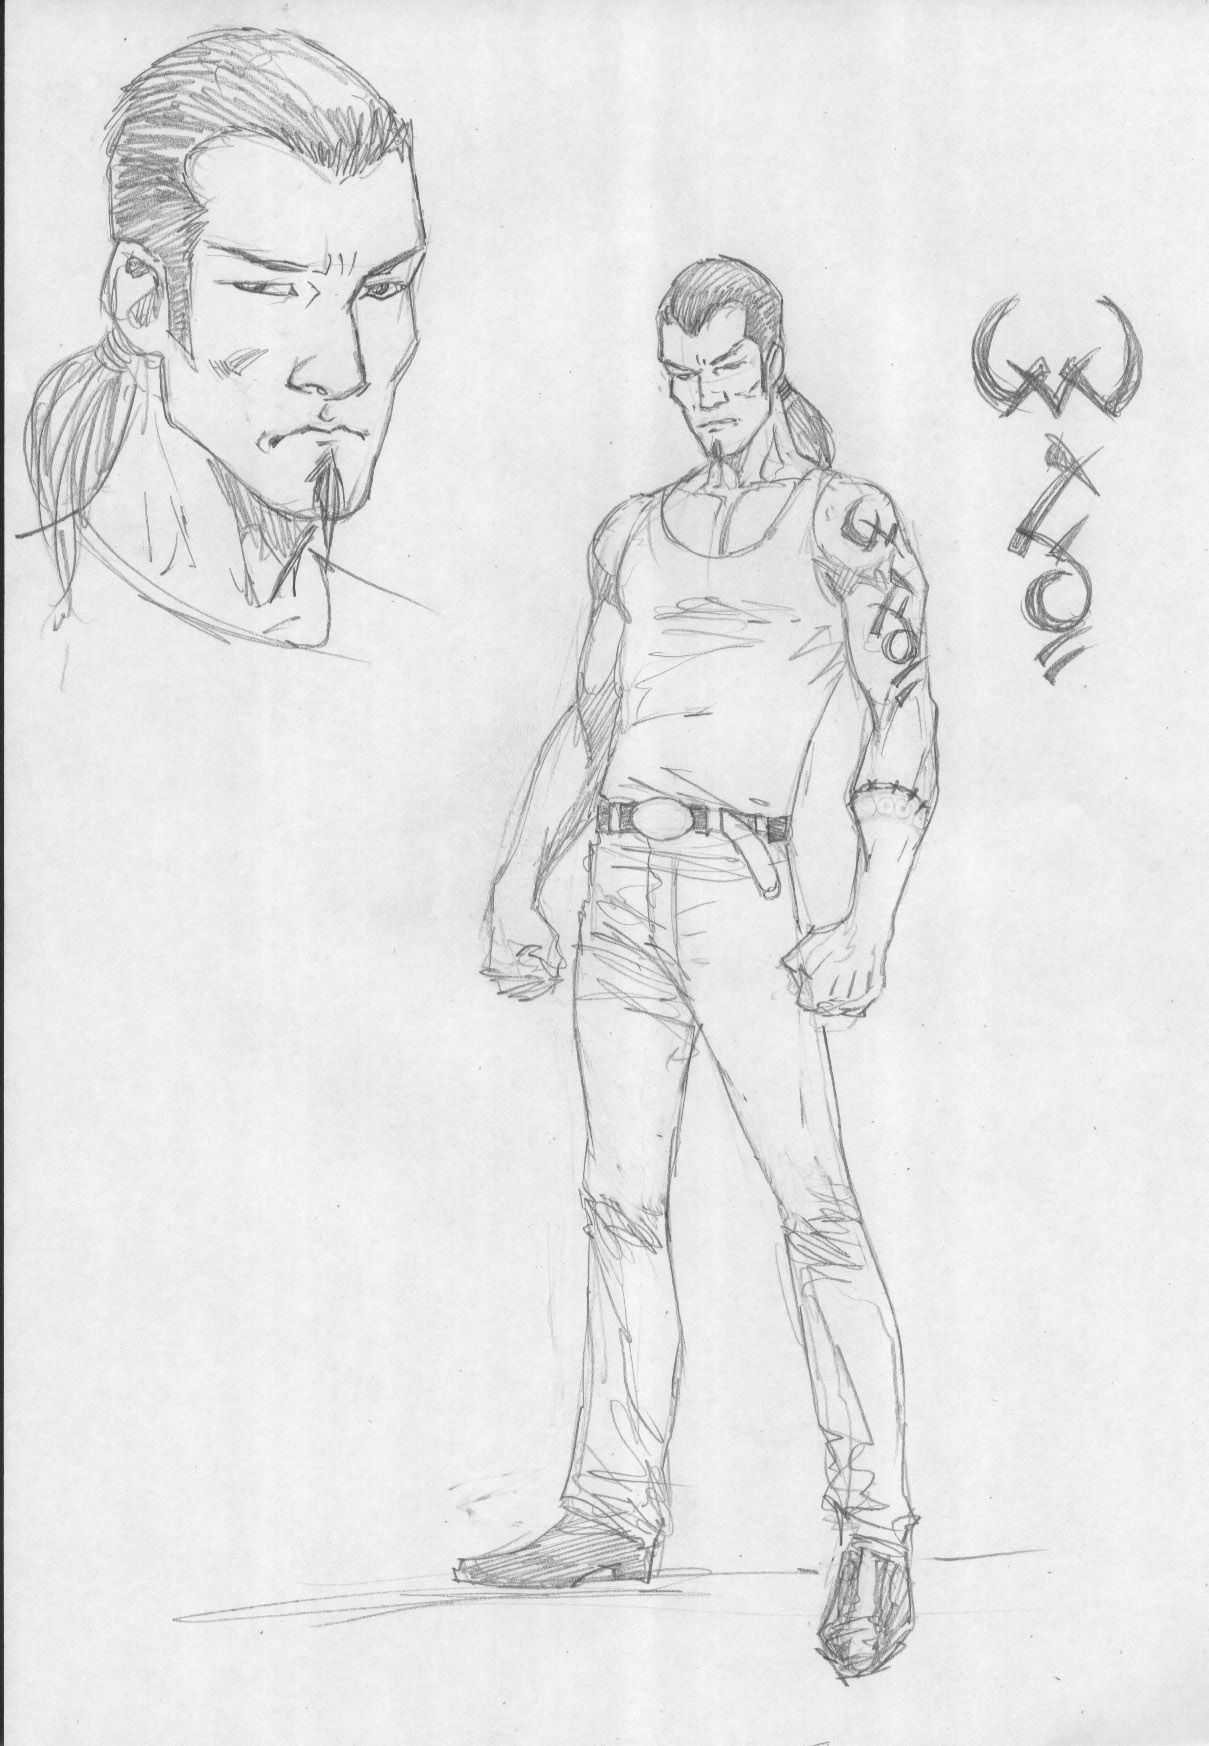 Character design from '12 by Ron Adrian of Ulysses Sanchez